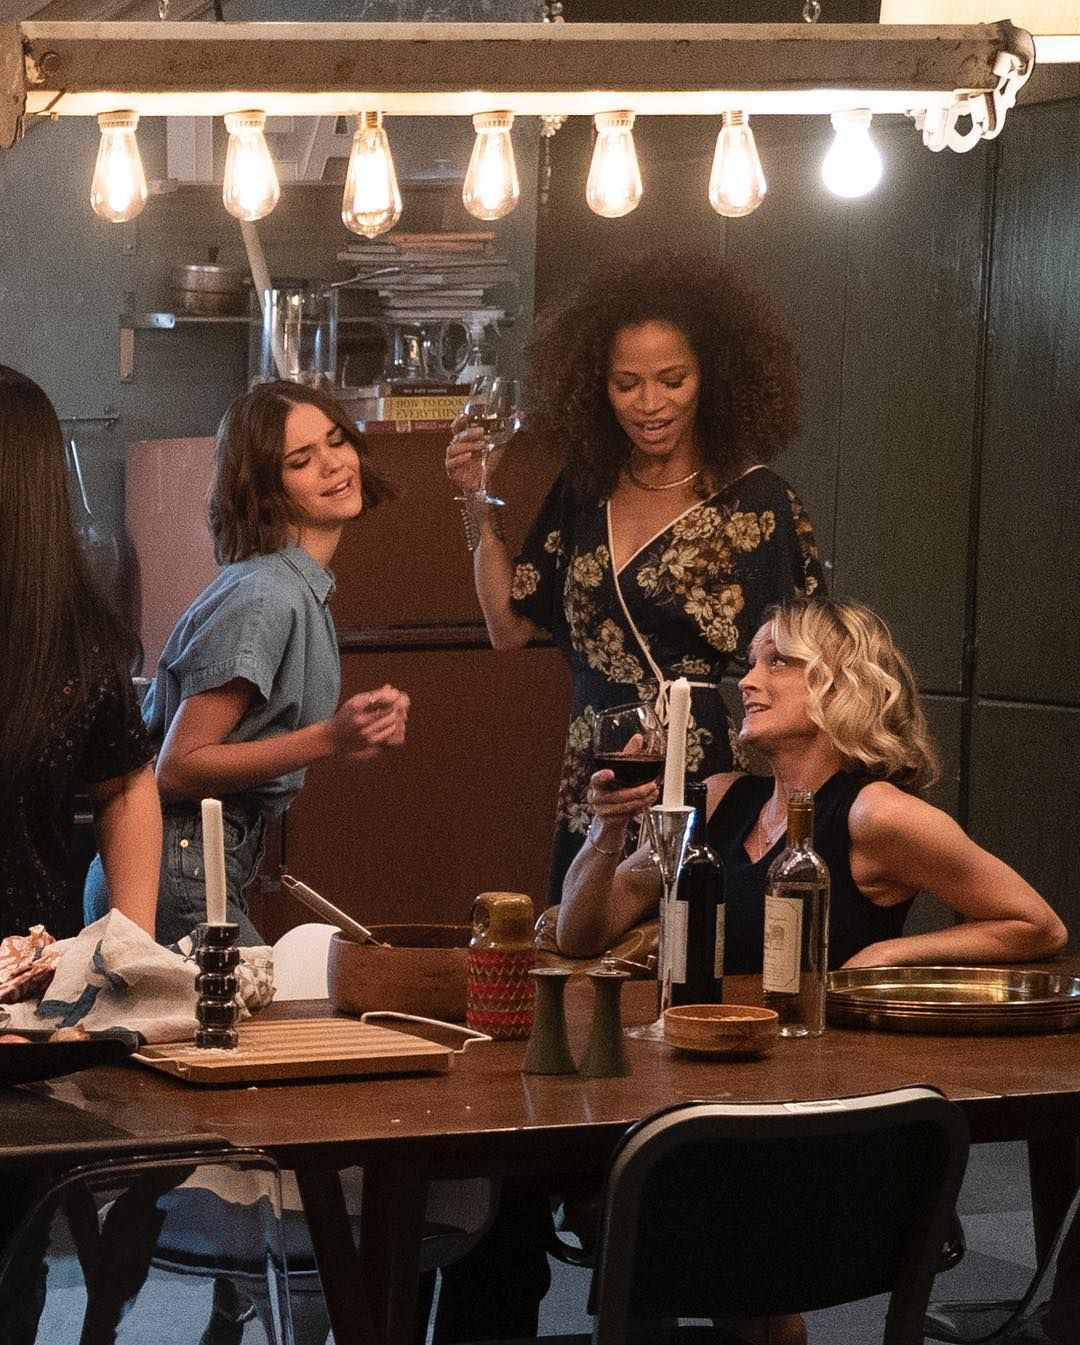 The Fosters On Instagram Dancing Around The Dinner Table